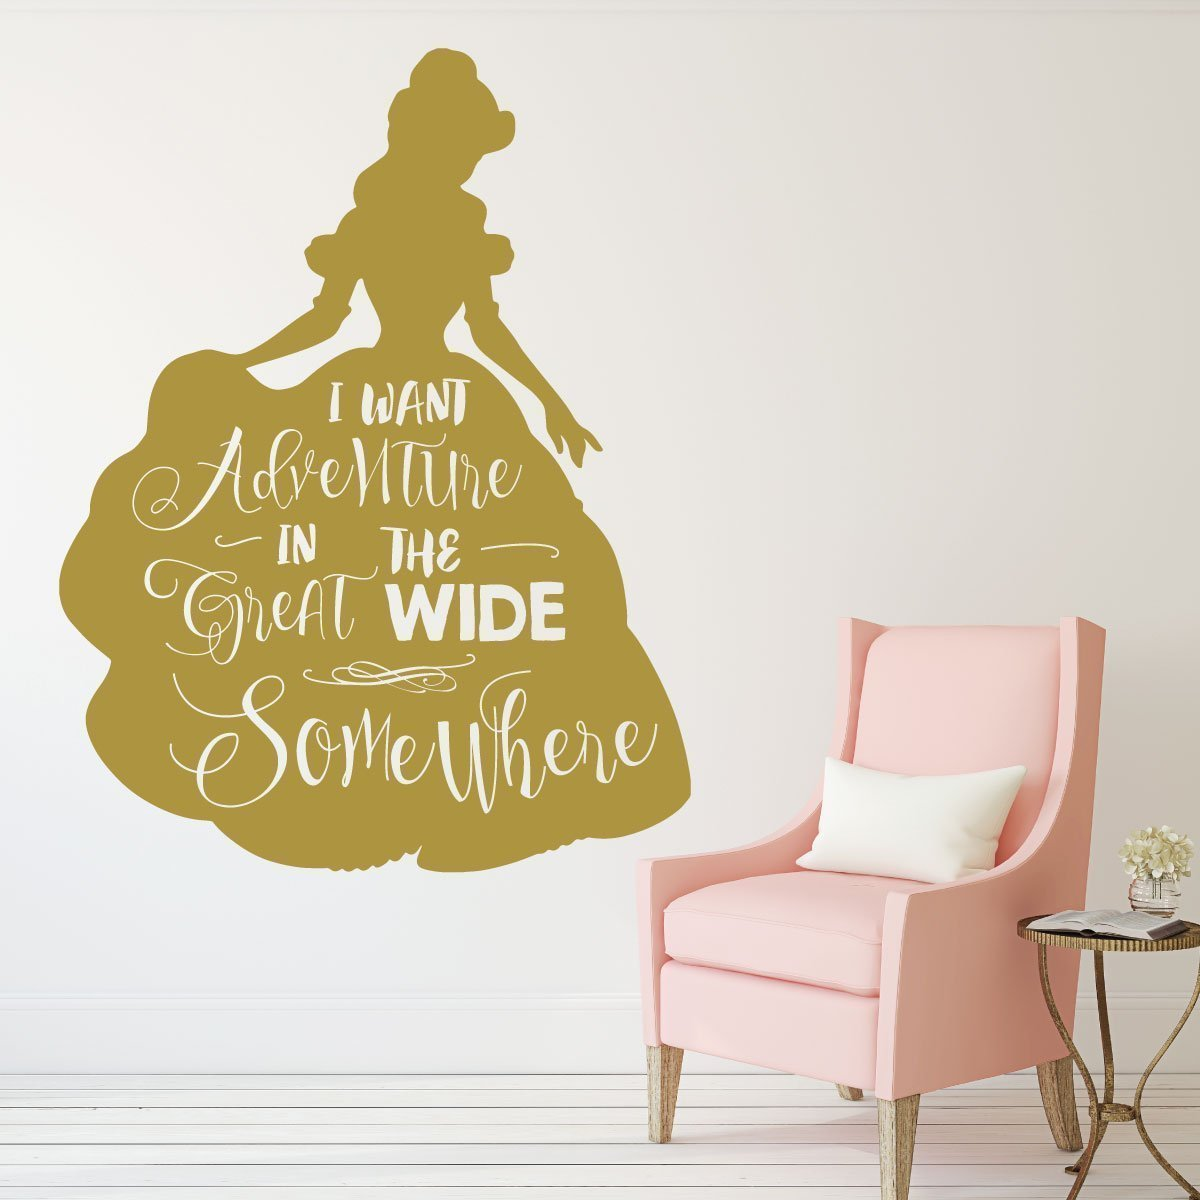 Disney Princesses Wall Decor- BELLE - Beauty and the Beast Theme ...